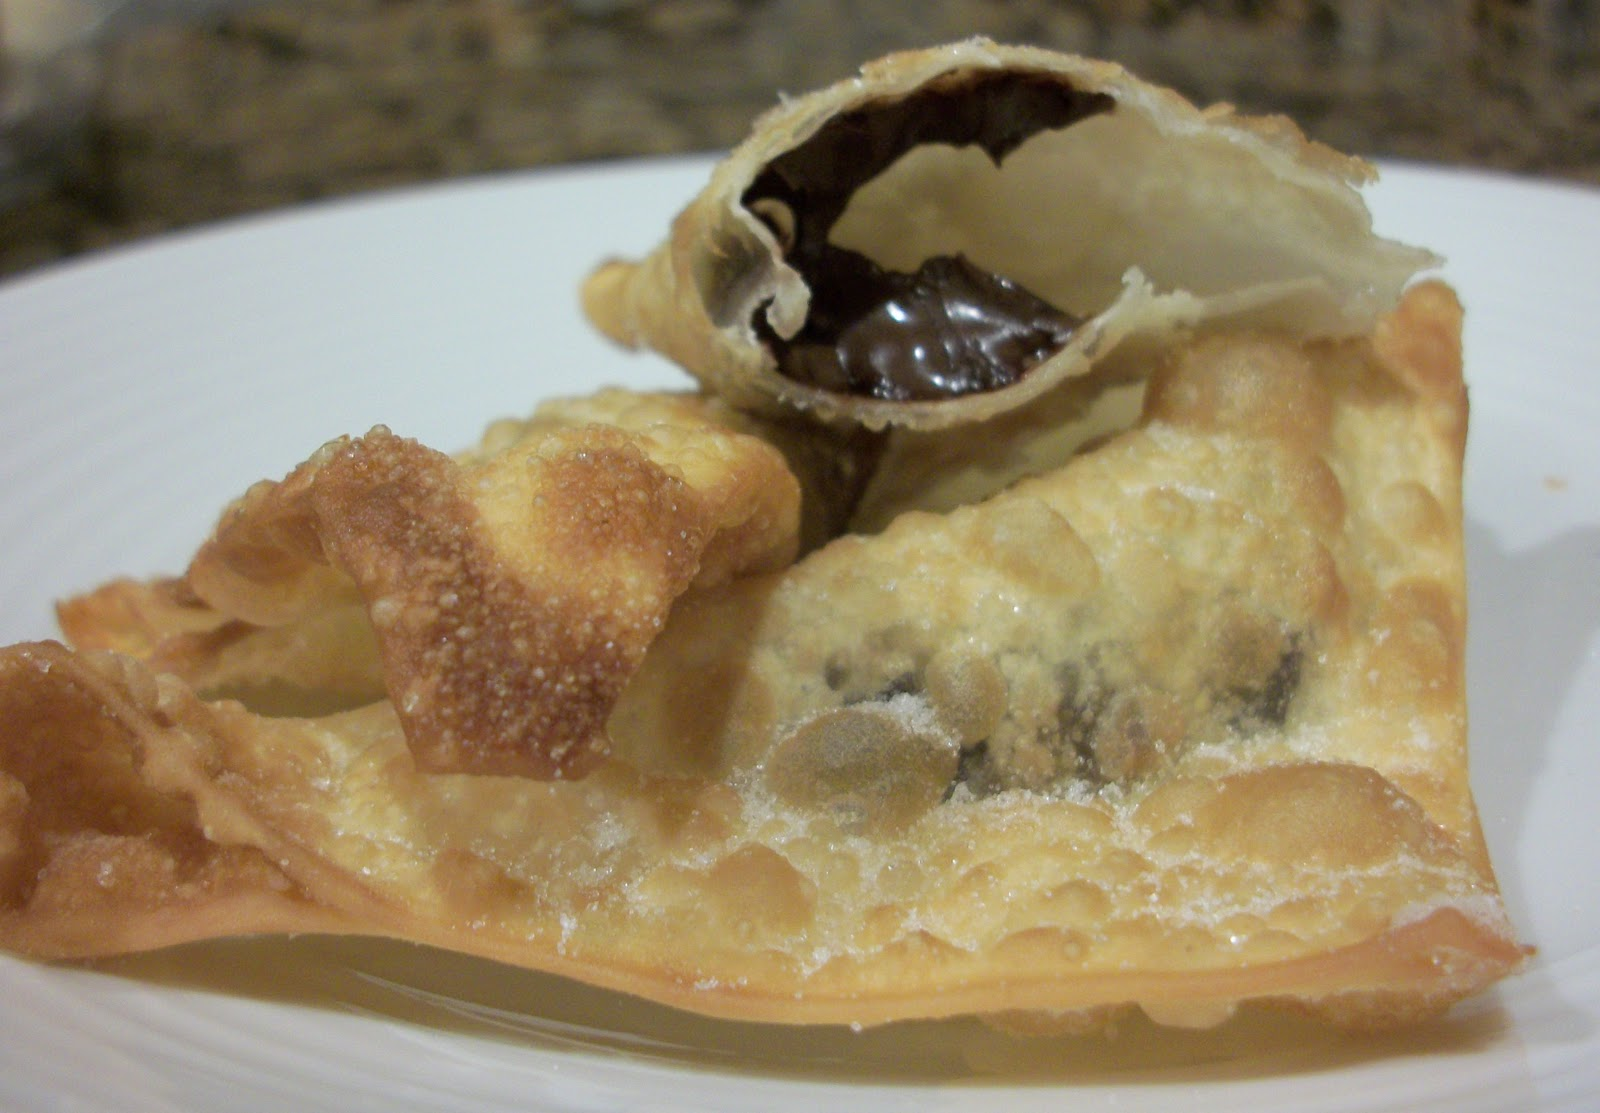 Crunchy Fried Chocolate Wontons Recipes — Dishmaps